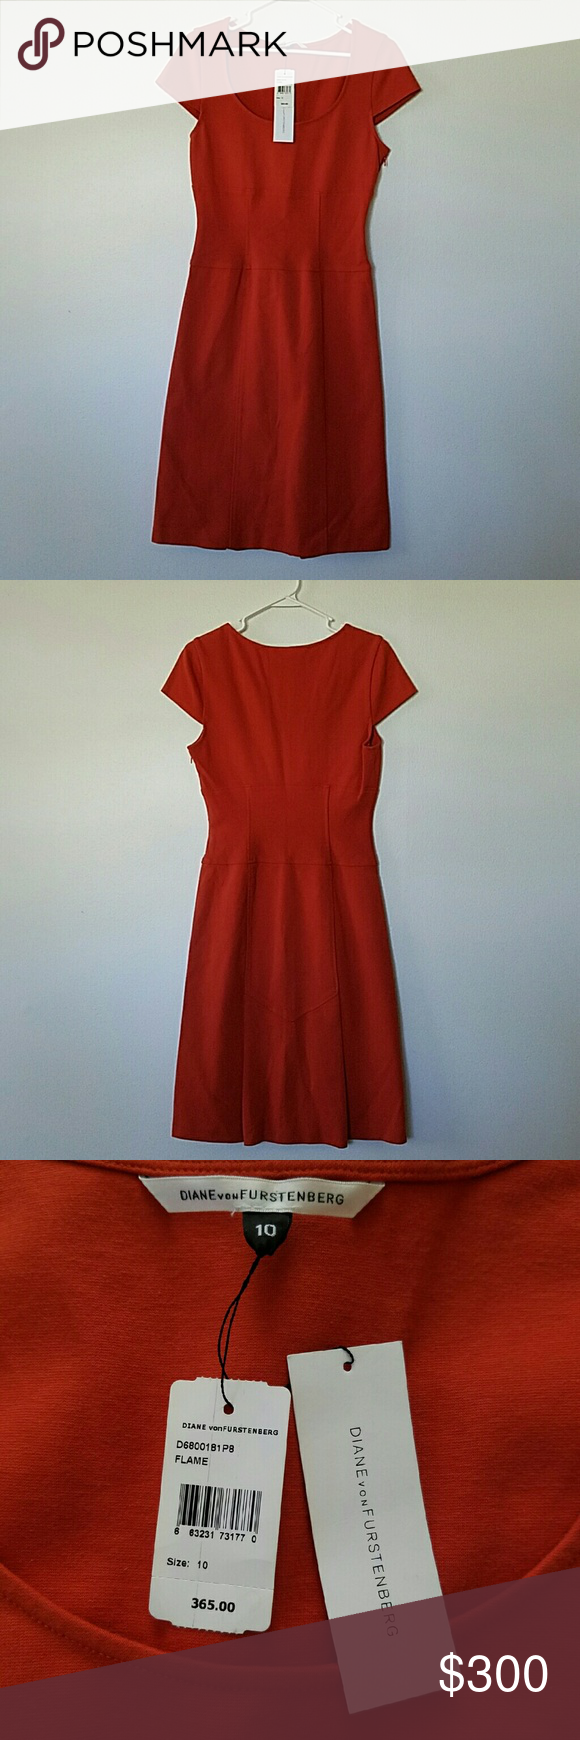 Diane von Furstenberg dress New with tags DVF dress. Size 10. Burnt orange. Diane von Furstenberg Dresses